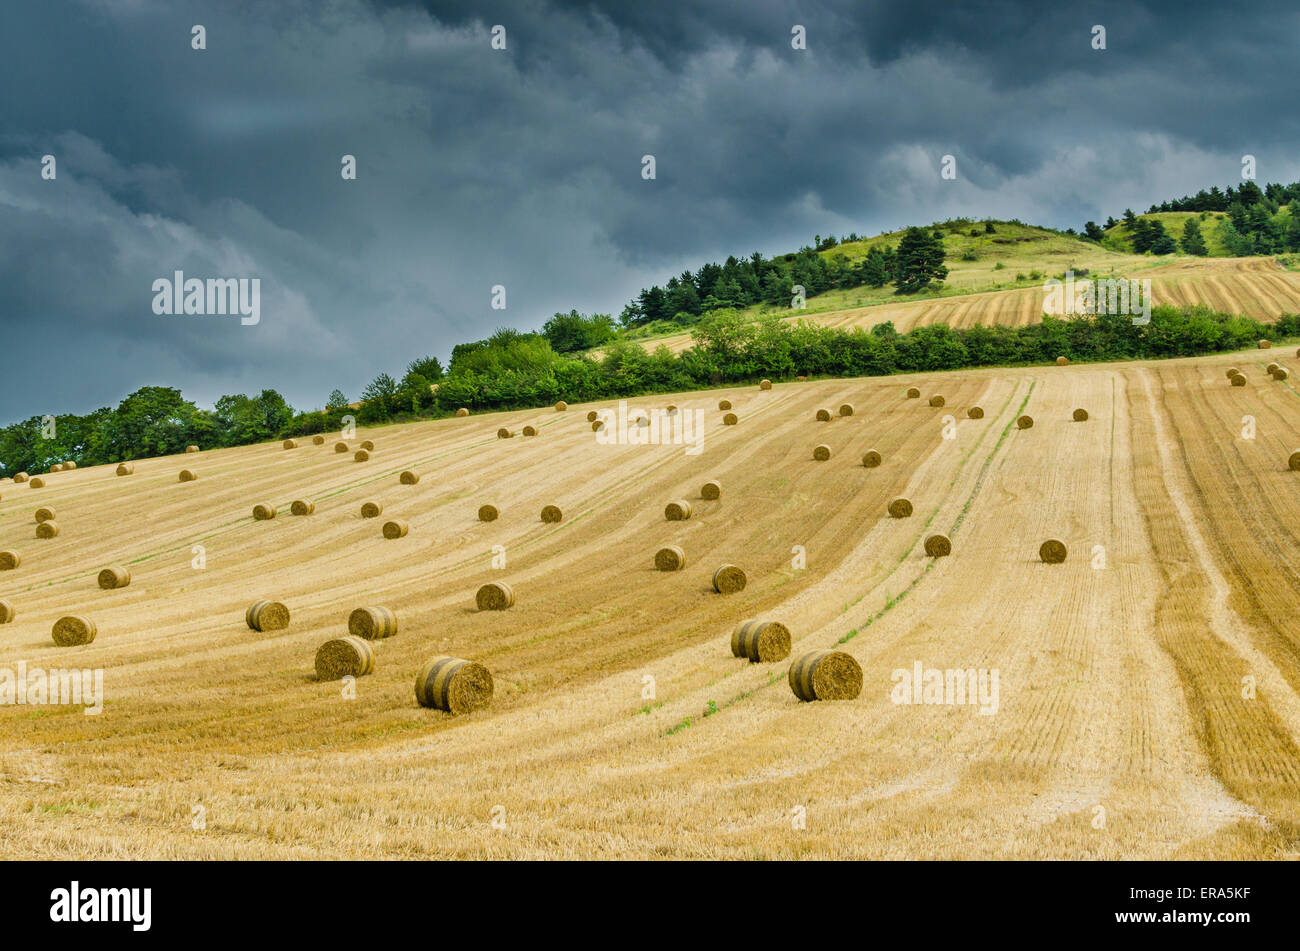 Hilly landscape rural landscape with hay bales - Stock Image